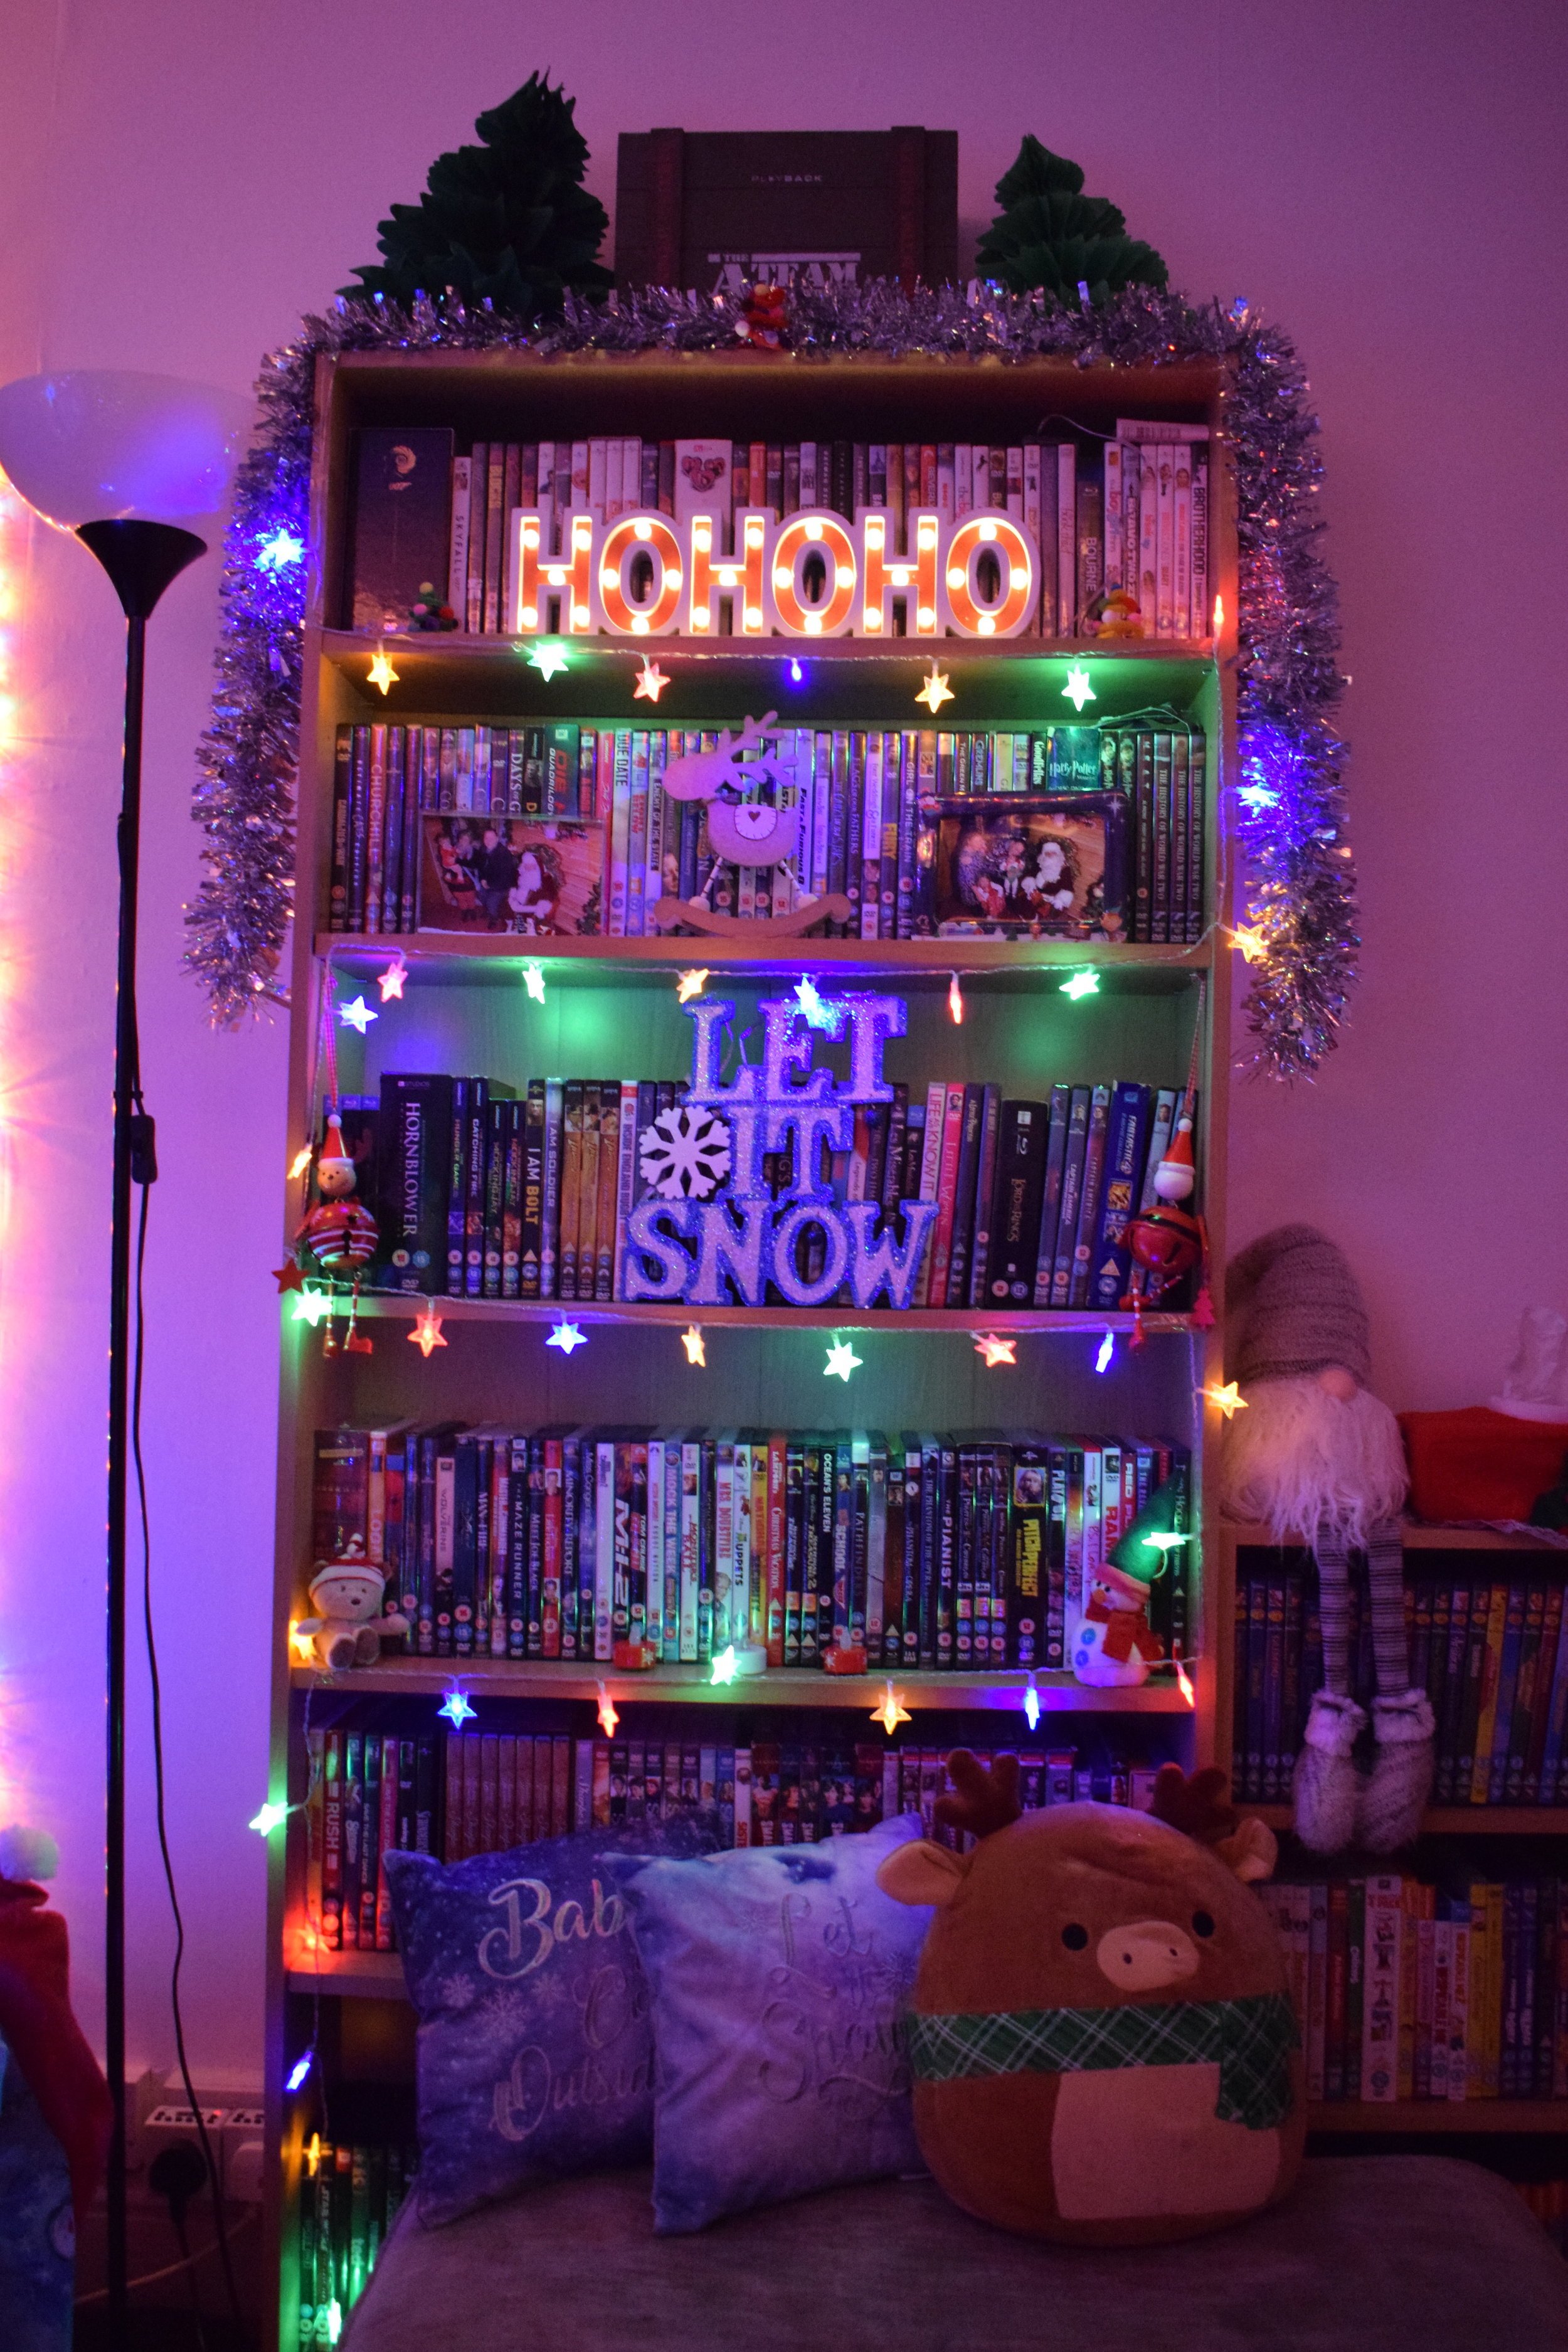 Christmas decorations on my bookshelf